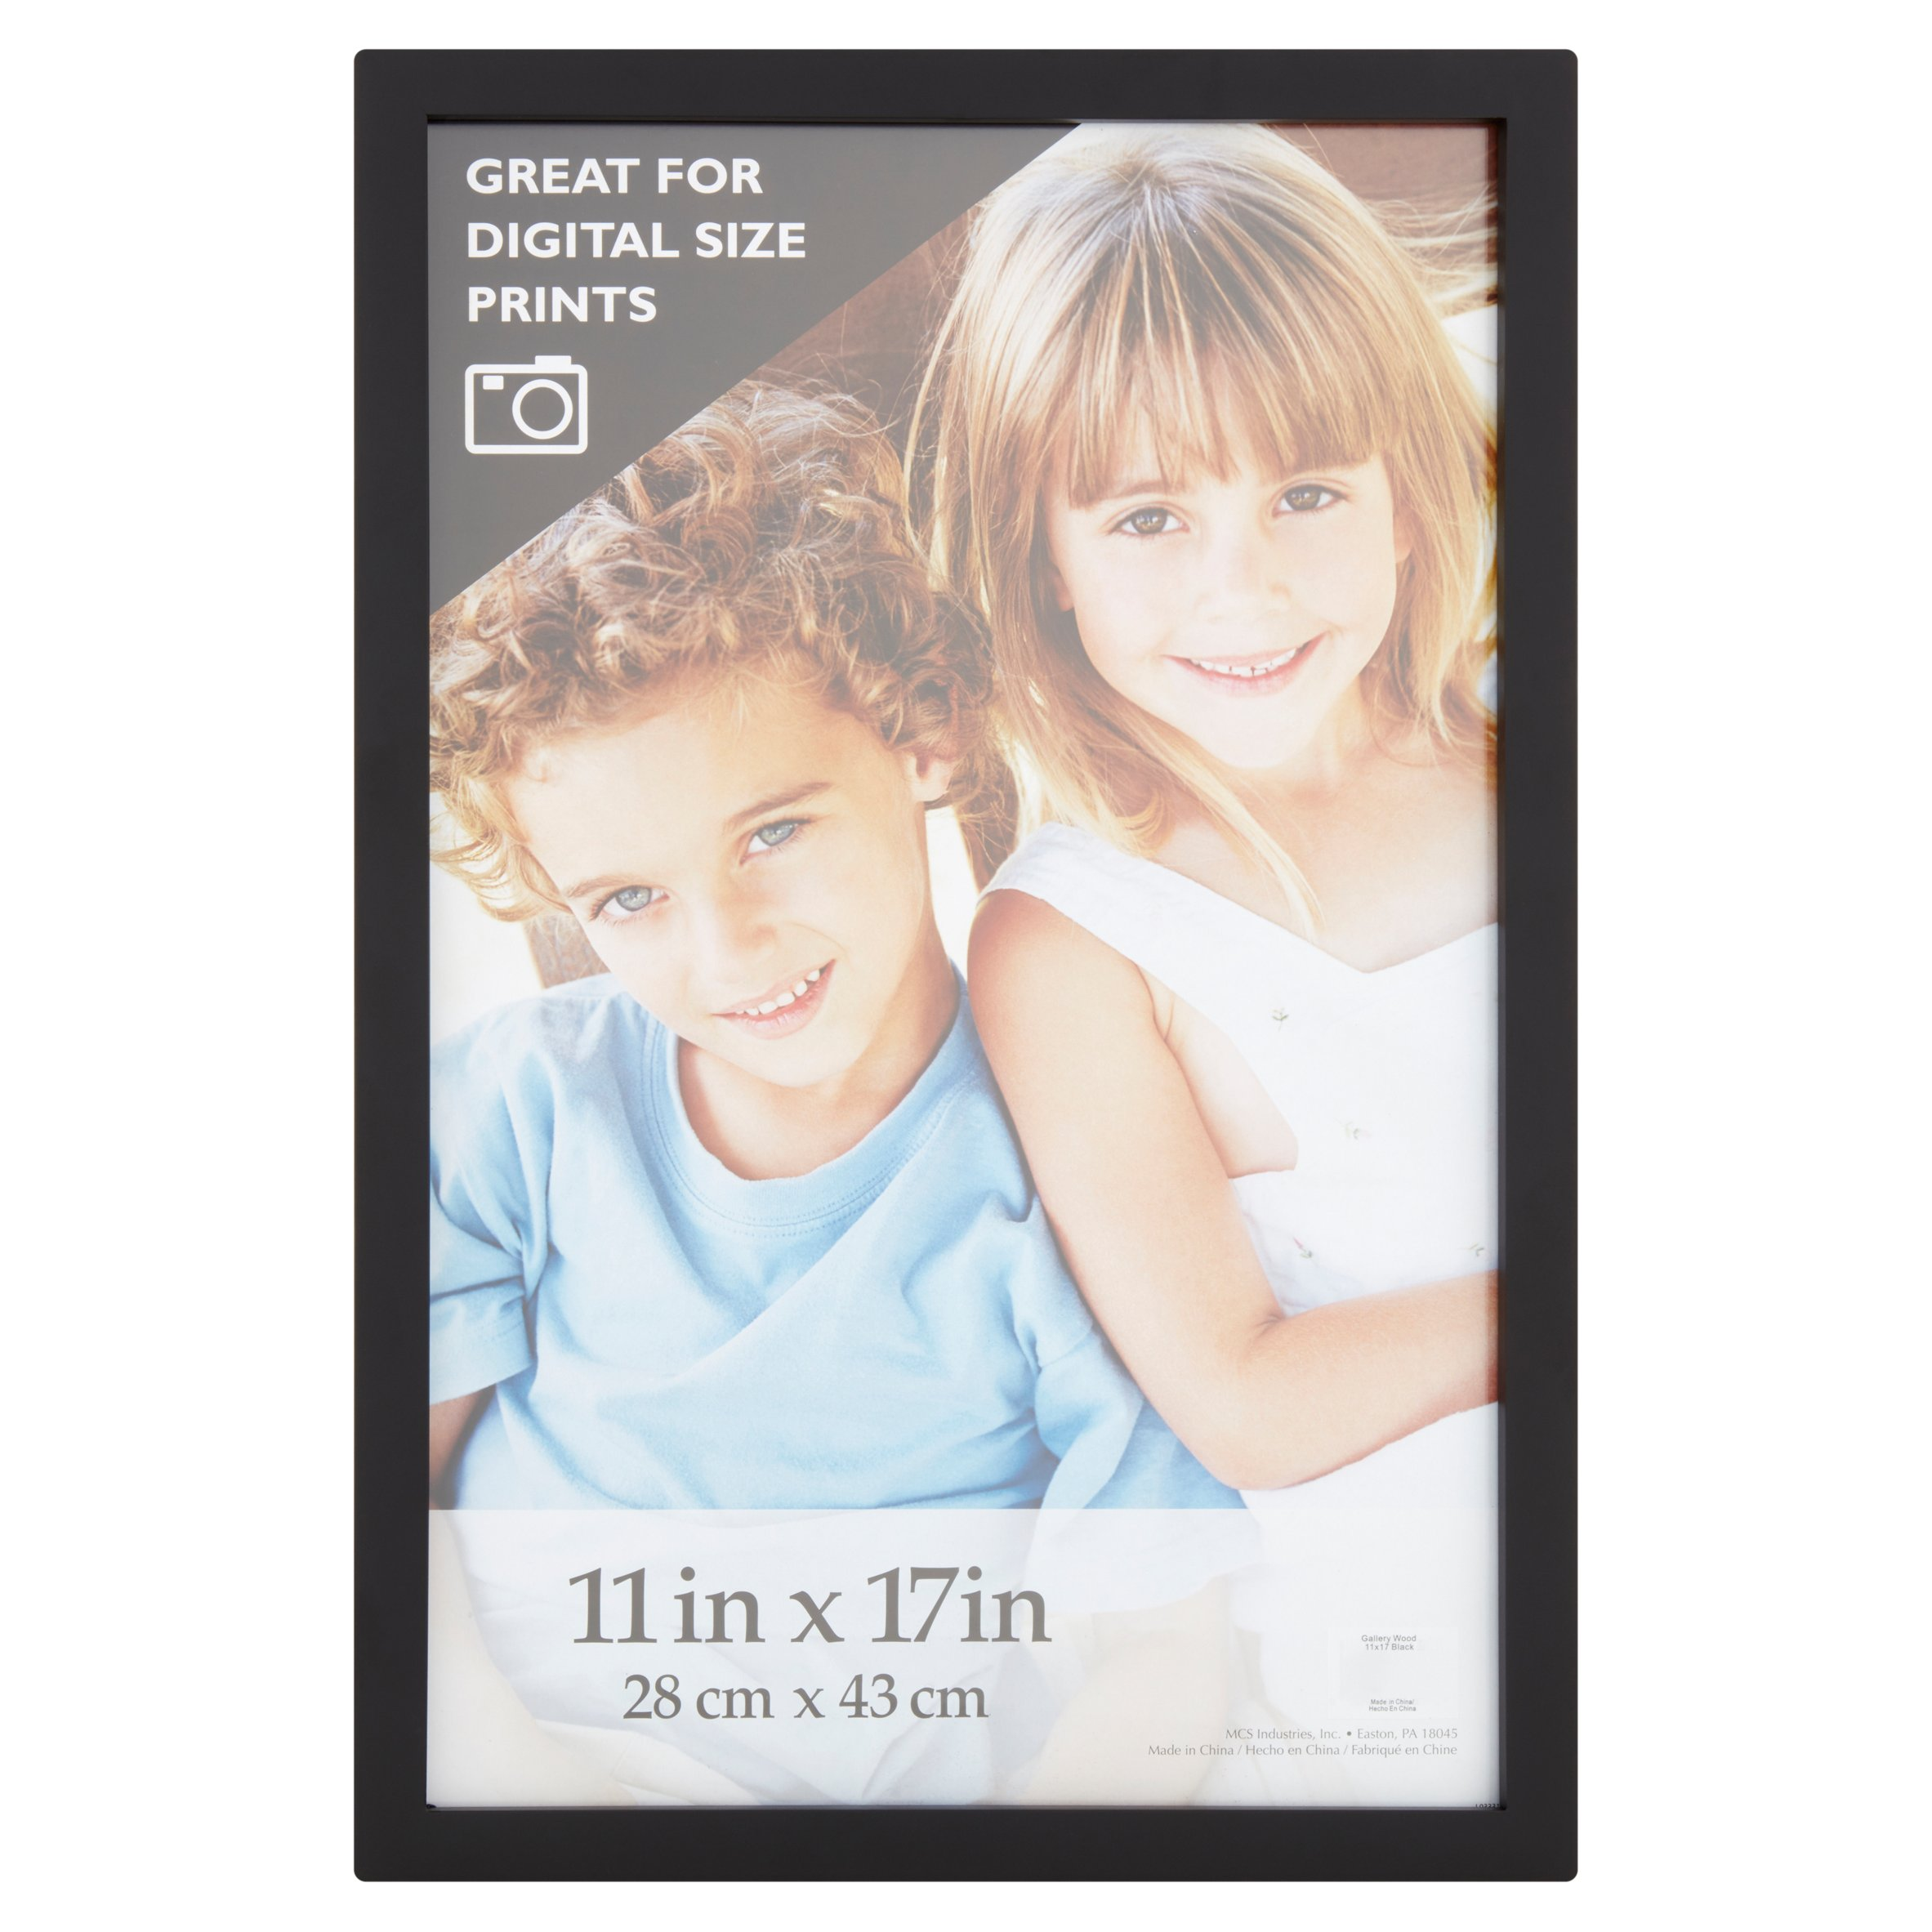 11 x 17 in. Black Gallery Picture Frame